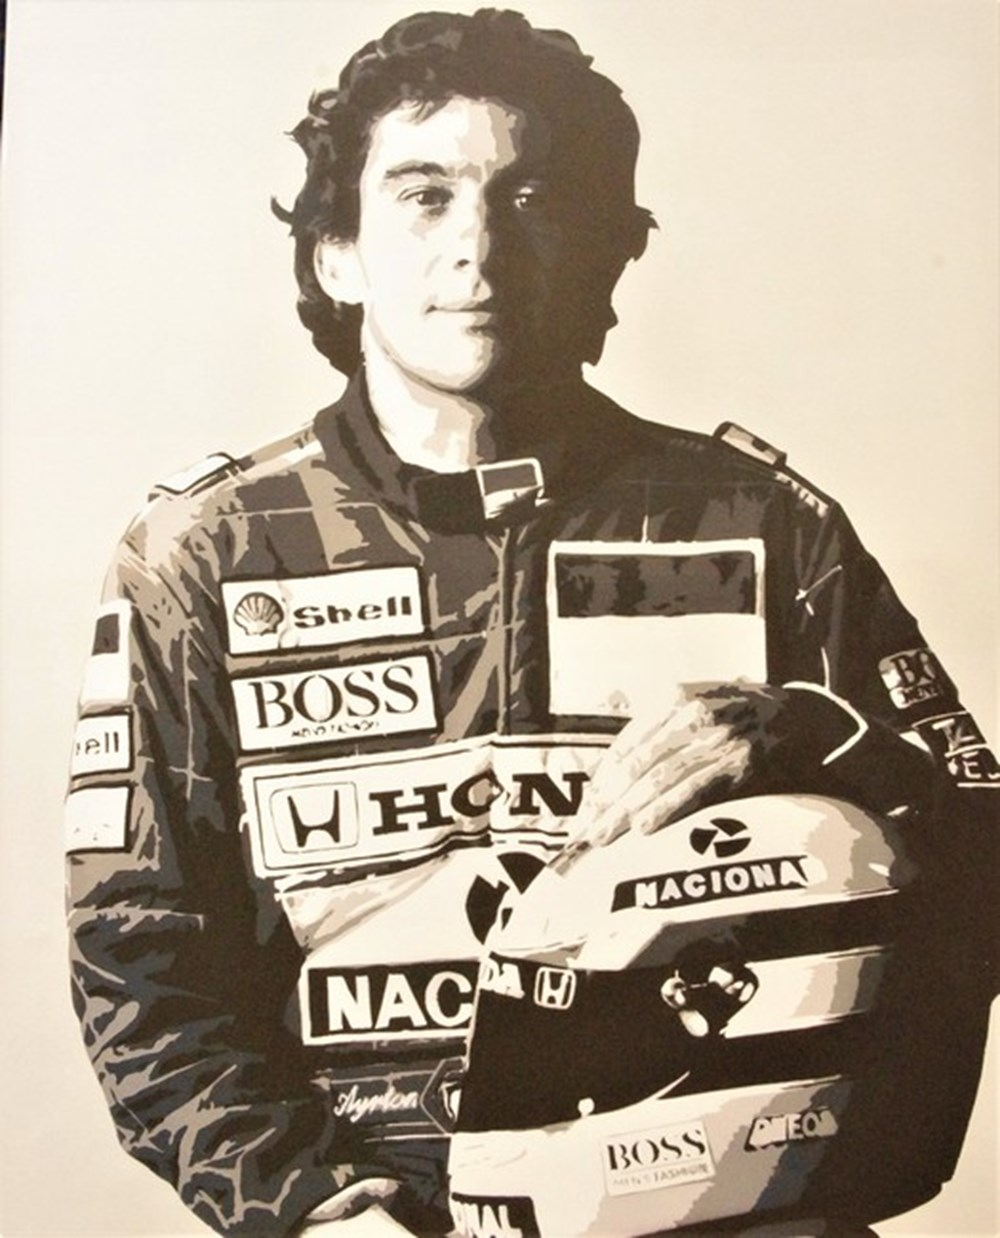 Lot 051 - Ayrton Senna canvas.